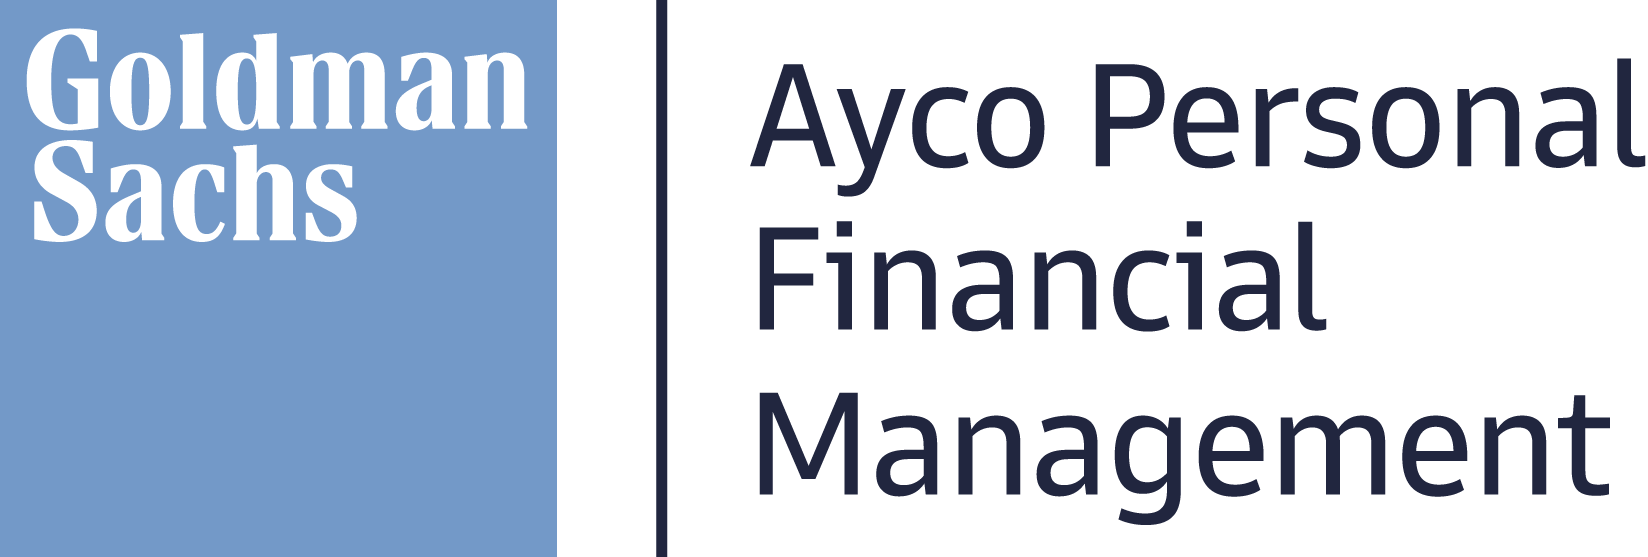 Goldman Sachs Ayco Personal Financial Management